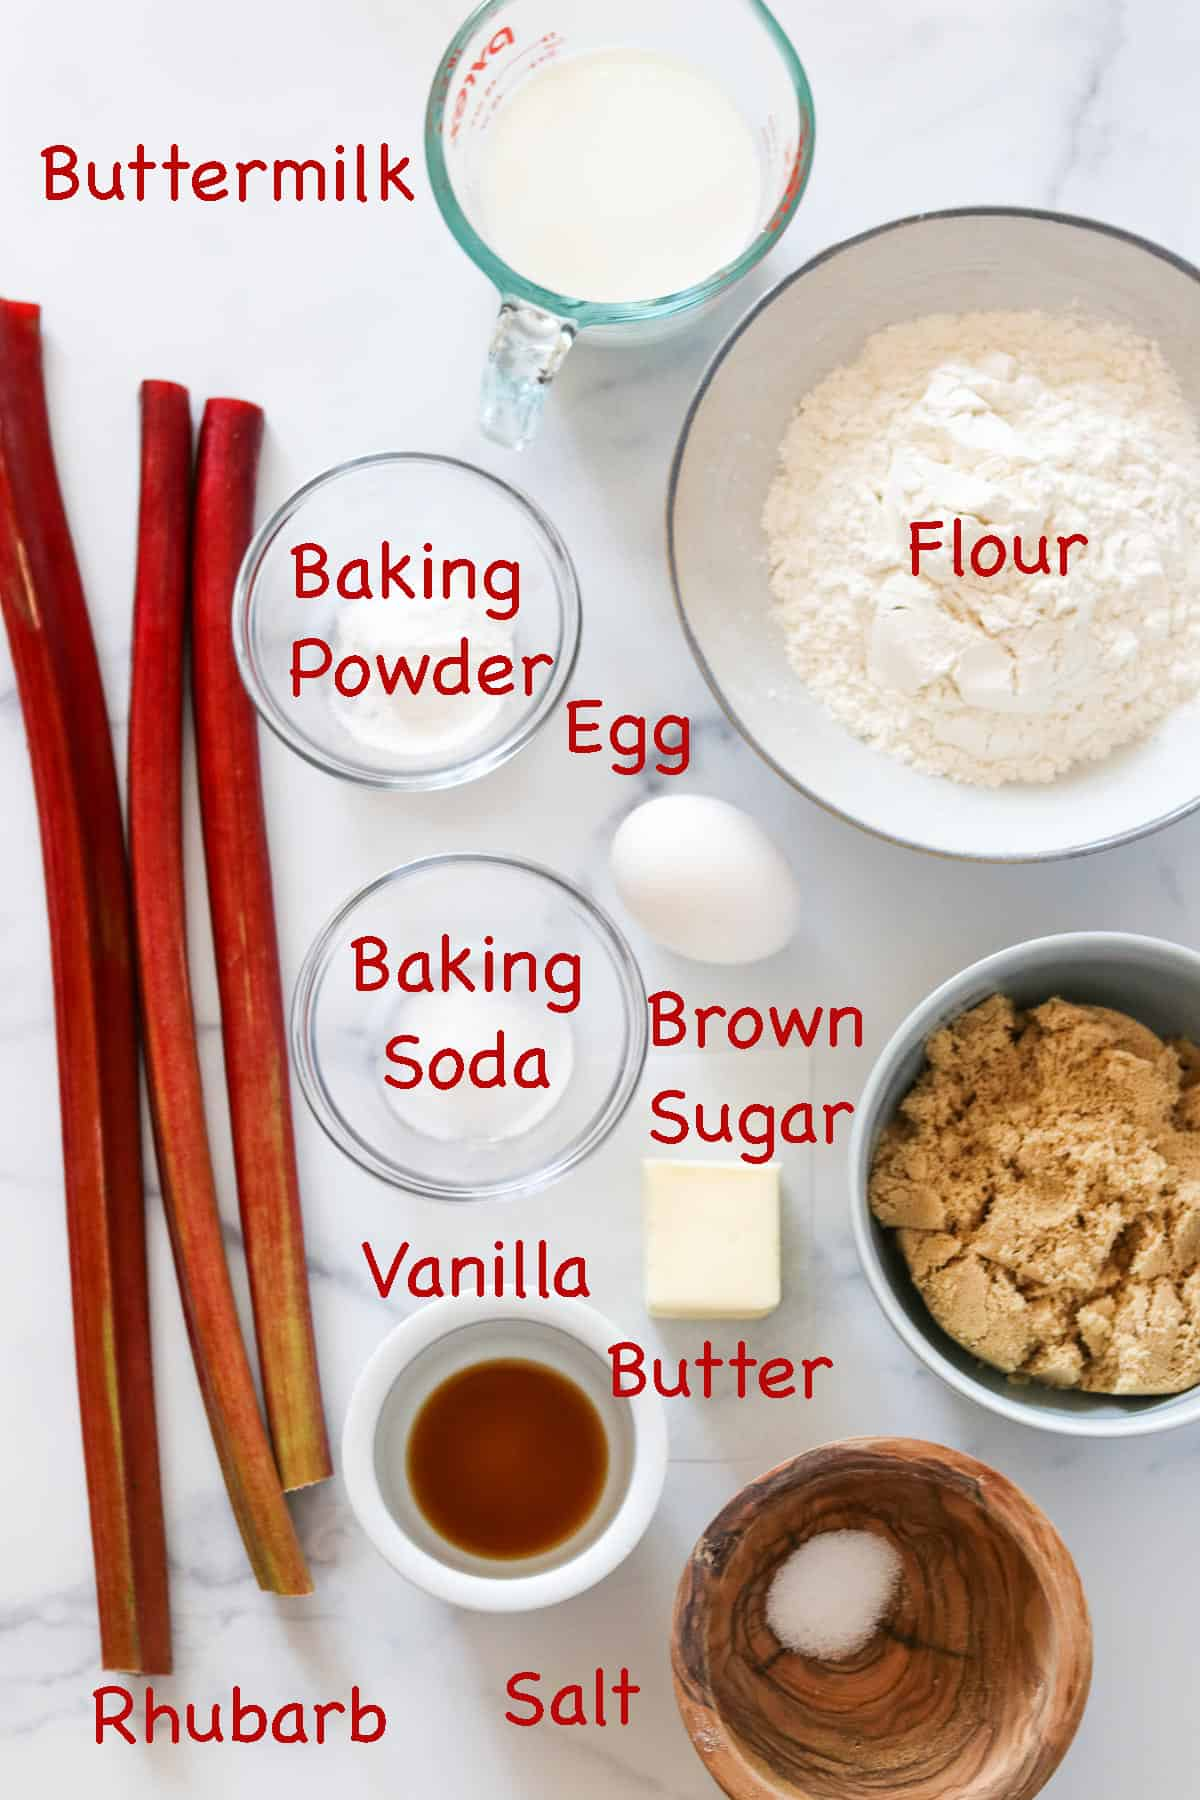 Labeled ingredients for Old-Fashioned Rhubarb Crumb Cake.